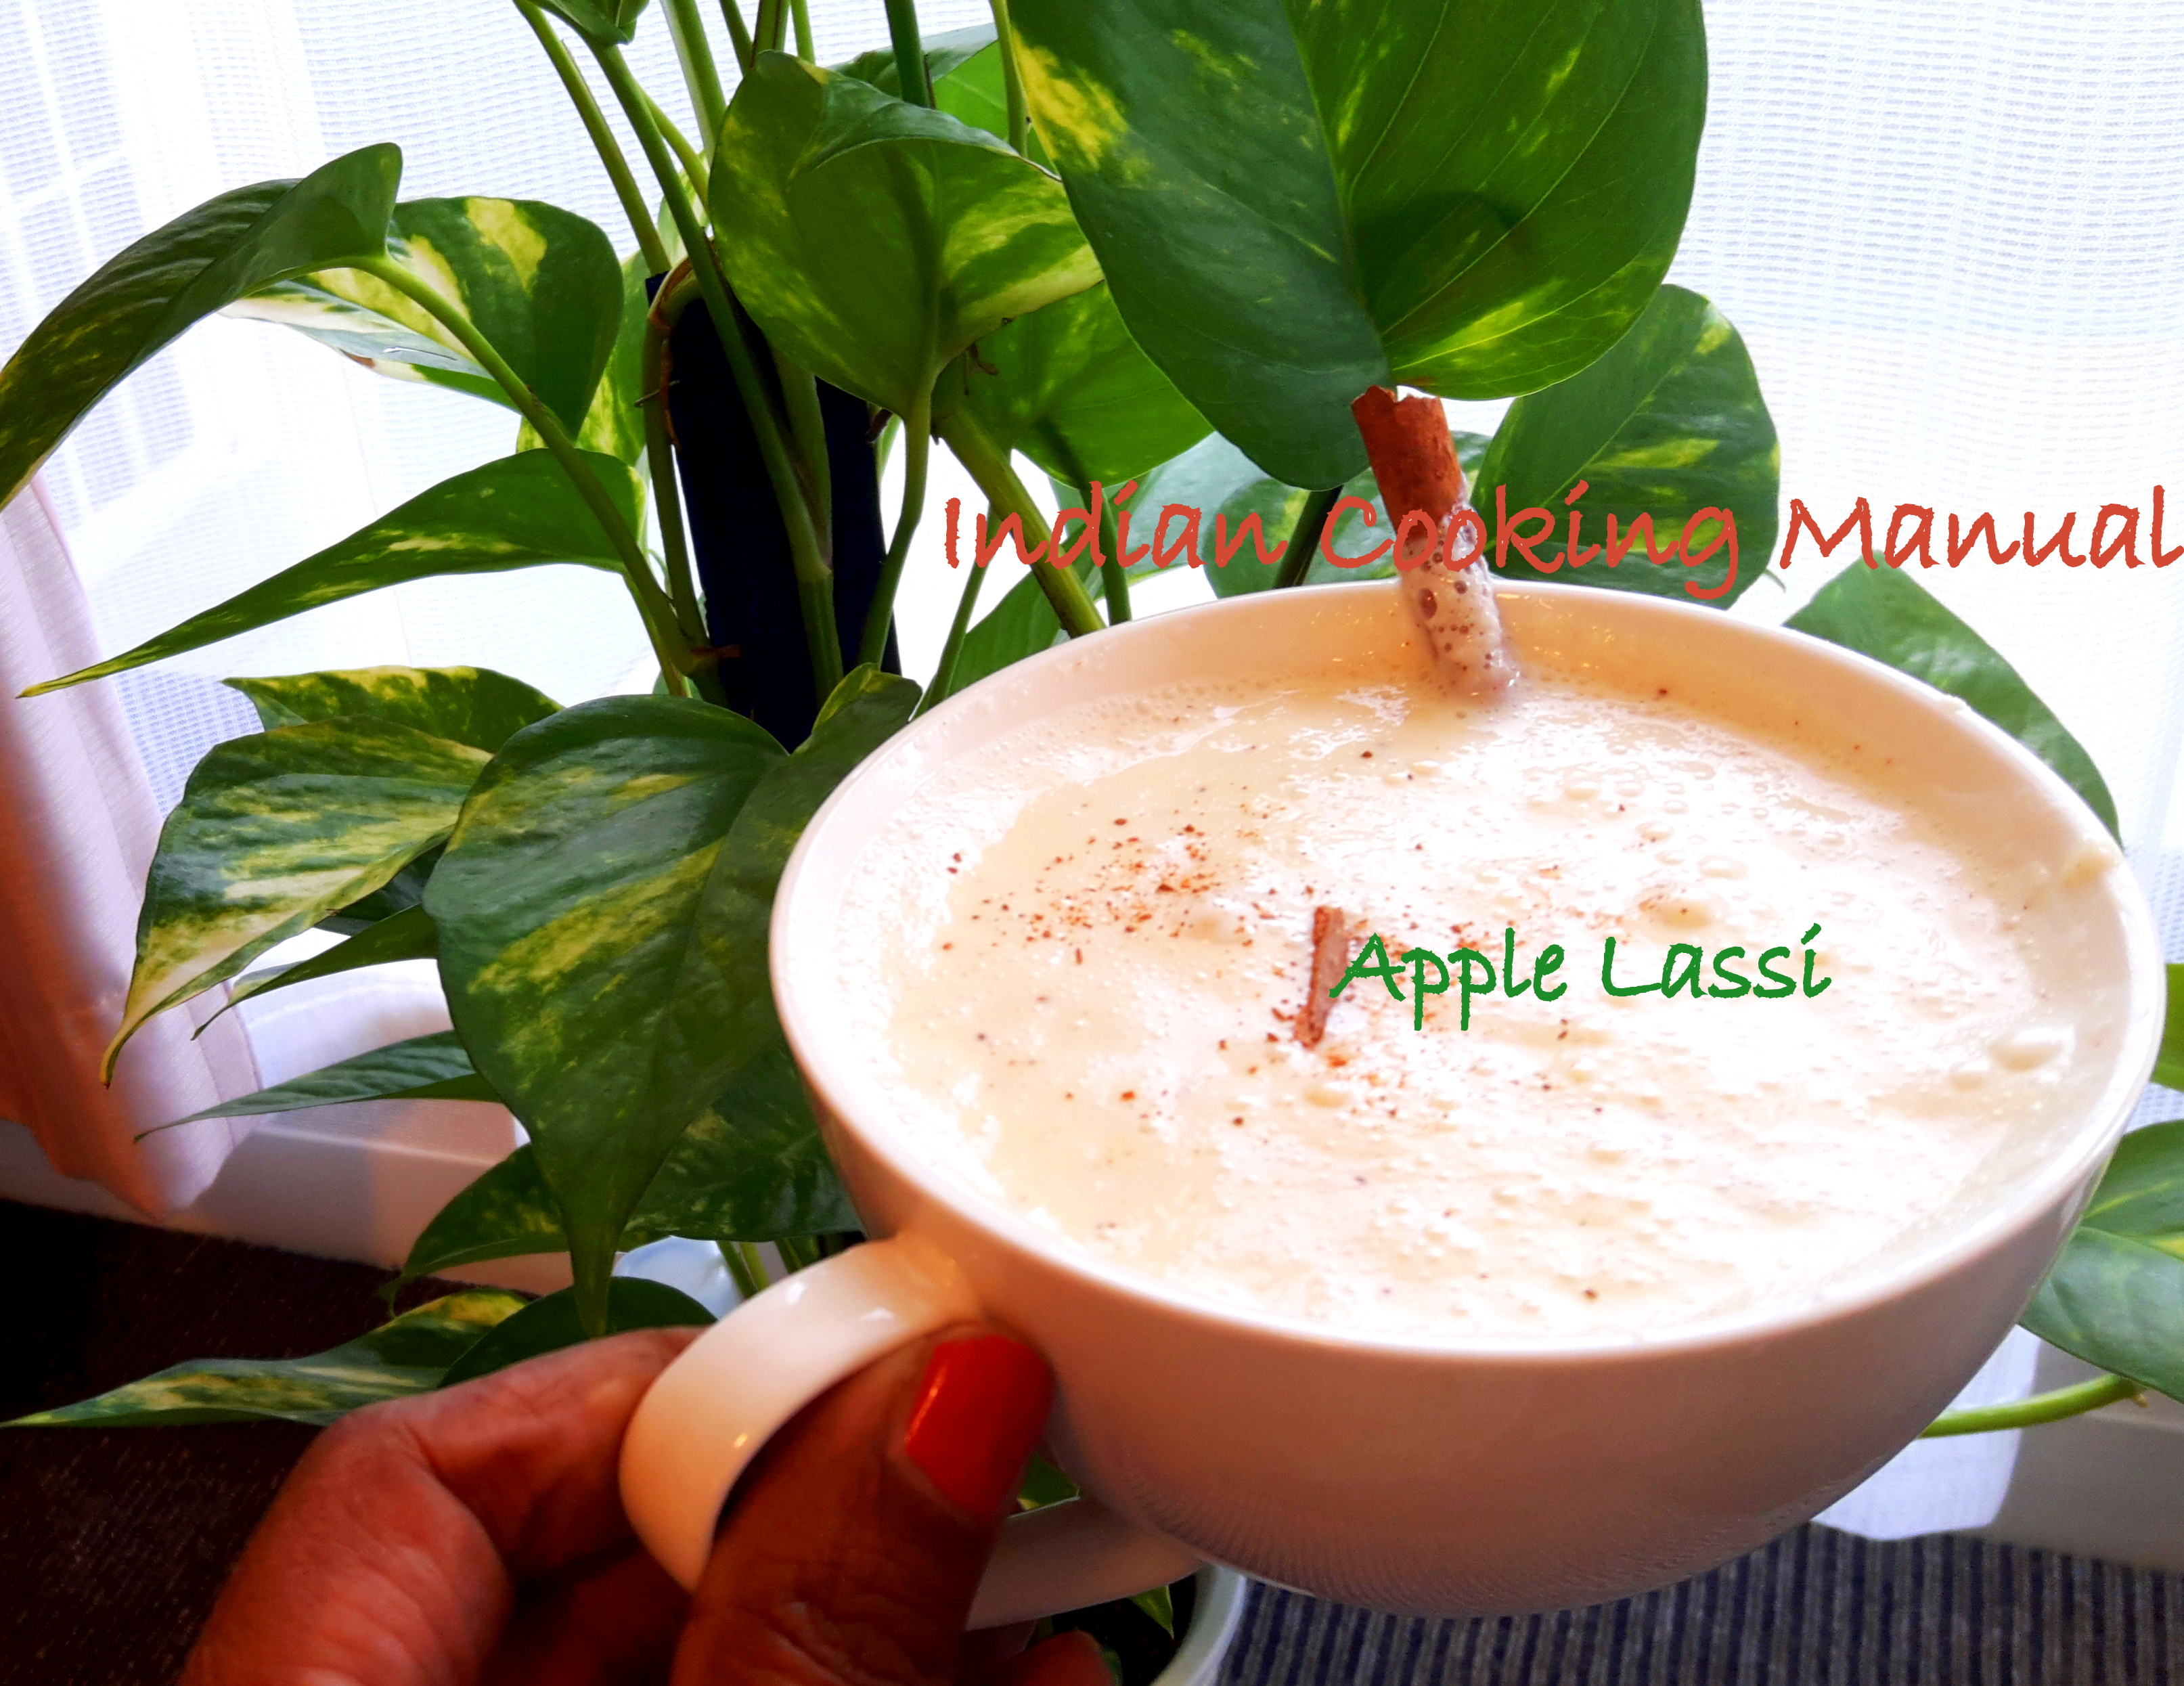 Apple Lassi (curd/yogurt based drink)